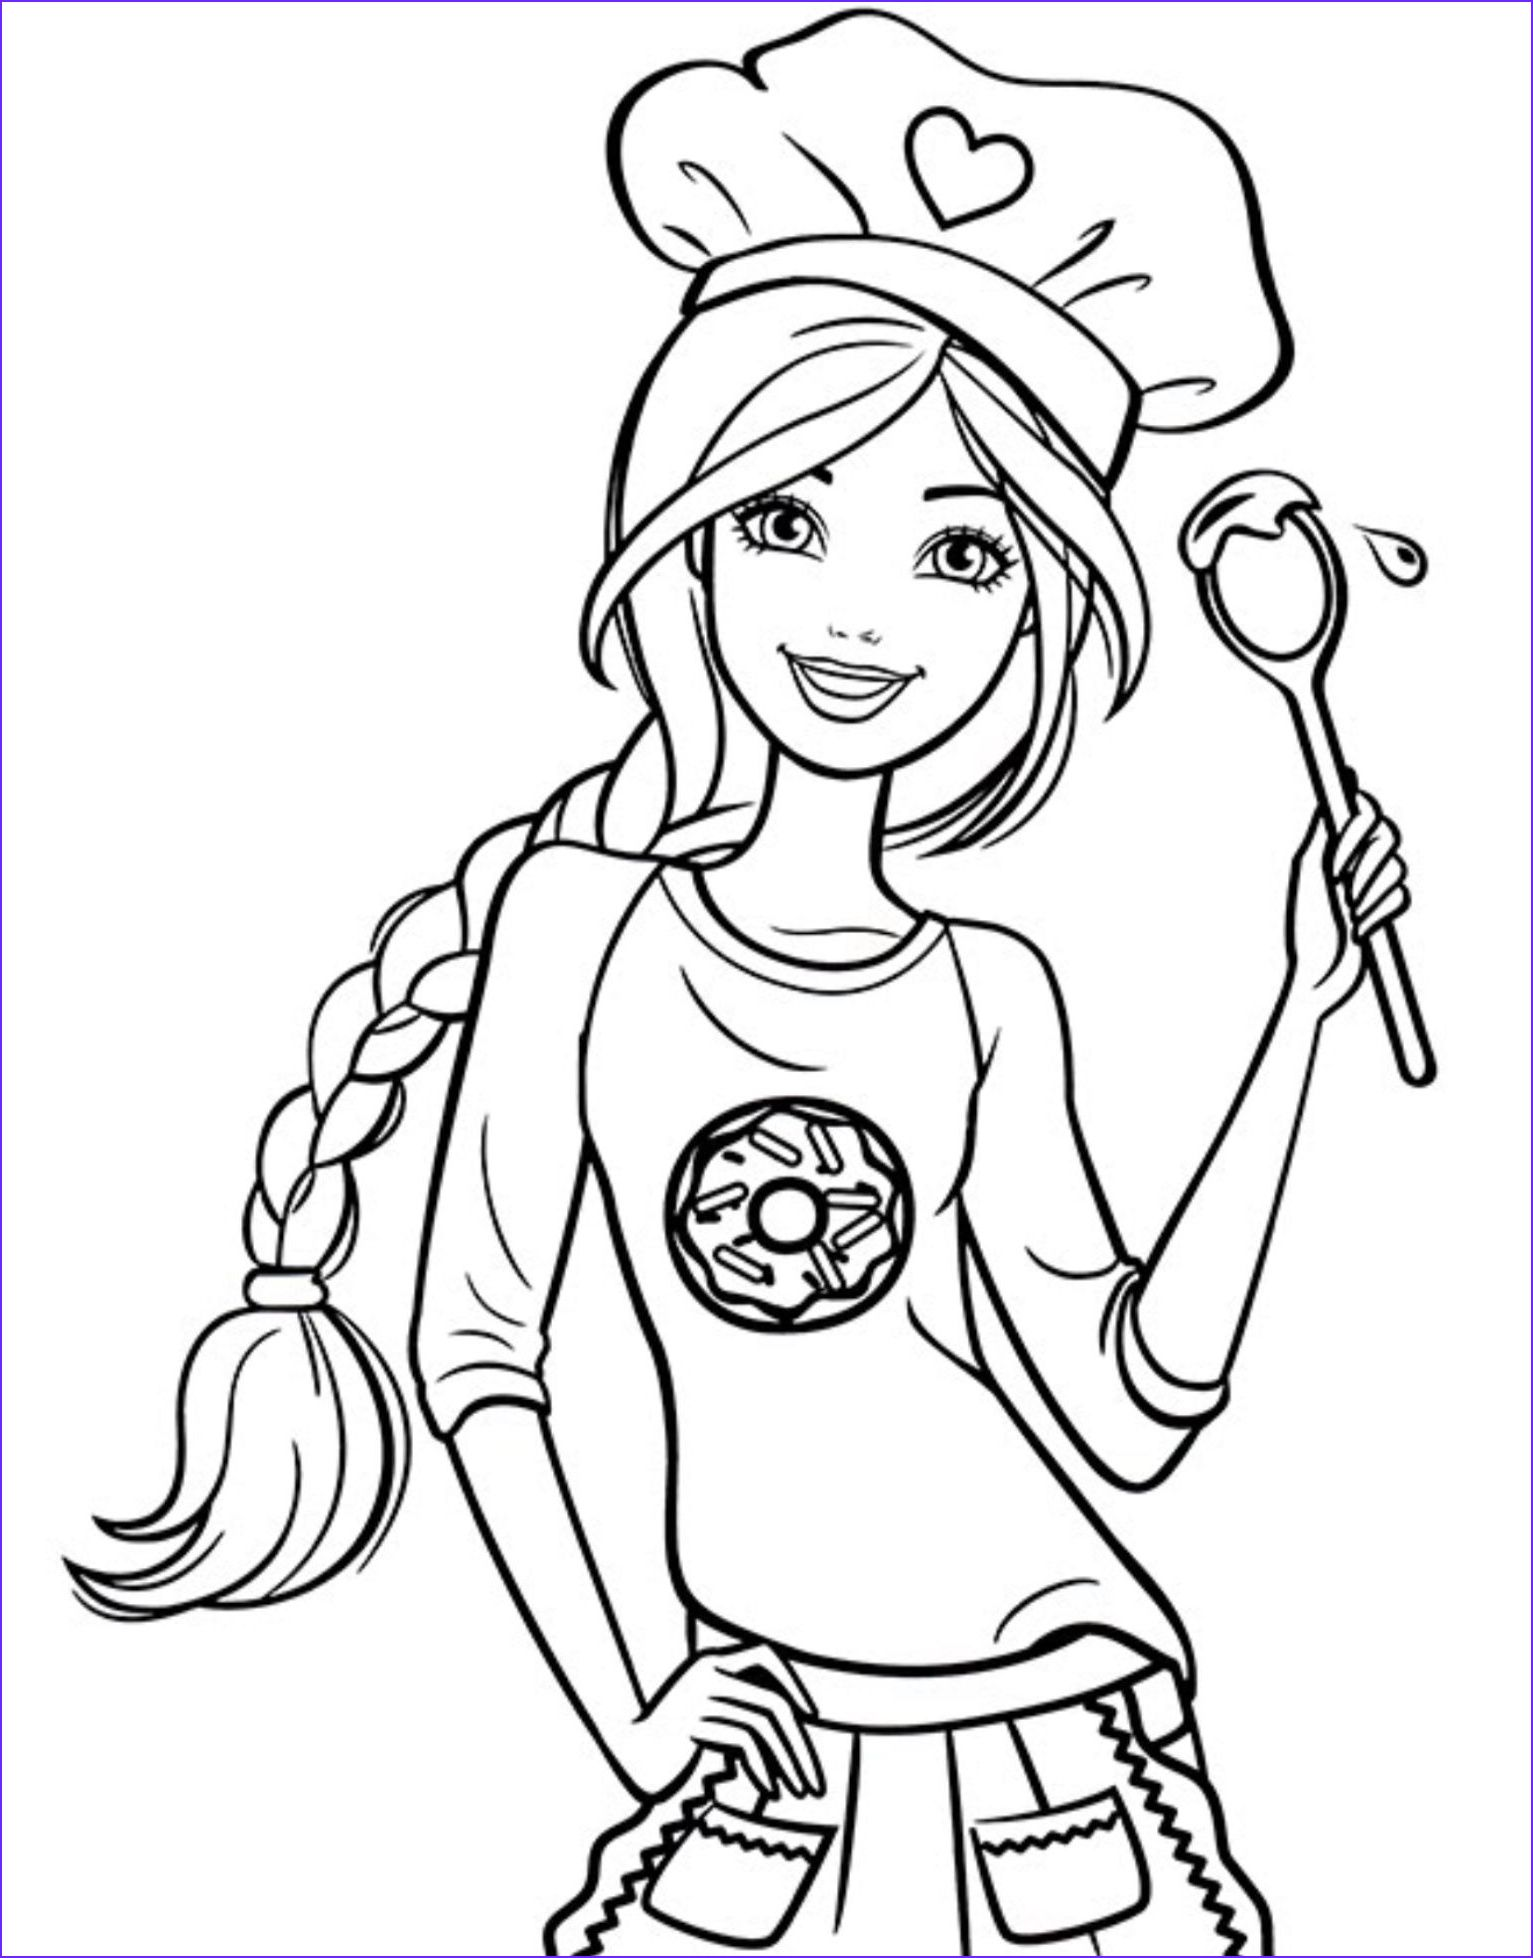 9 Elegant Barbie Coloring Pages Collection Barbie Coloring Pages Princess Coloring Pages Mermaid Coloring Pages